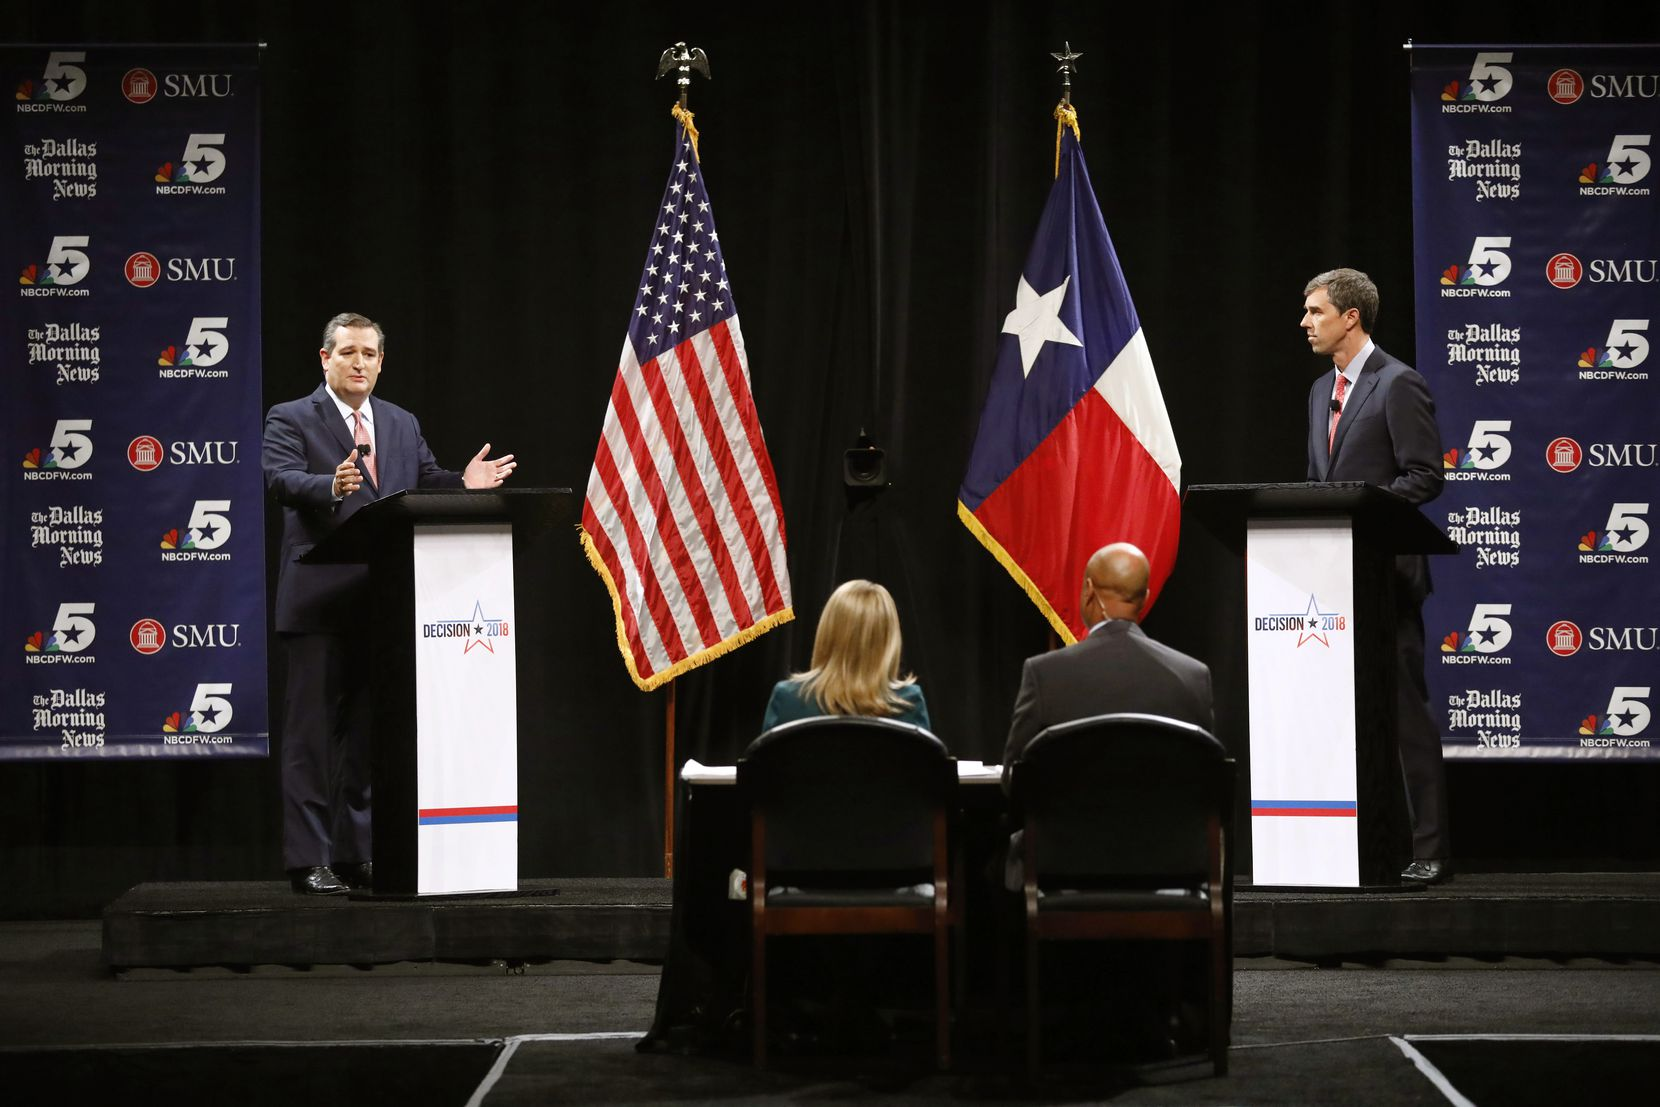 Republican U.S. Sen. Ted Cruz (left) and U.S. Rep. Beto O'Rourke, D-El Paso, shown in their first debate in Dallas last month, are inundating TV with ads asking for votes in the Nov. 6 election.